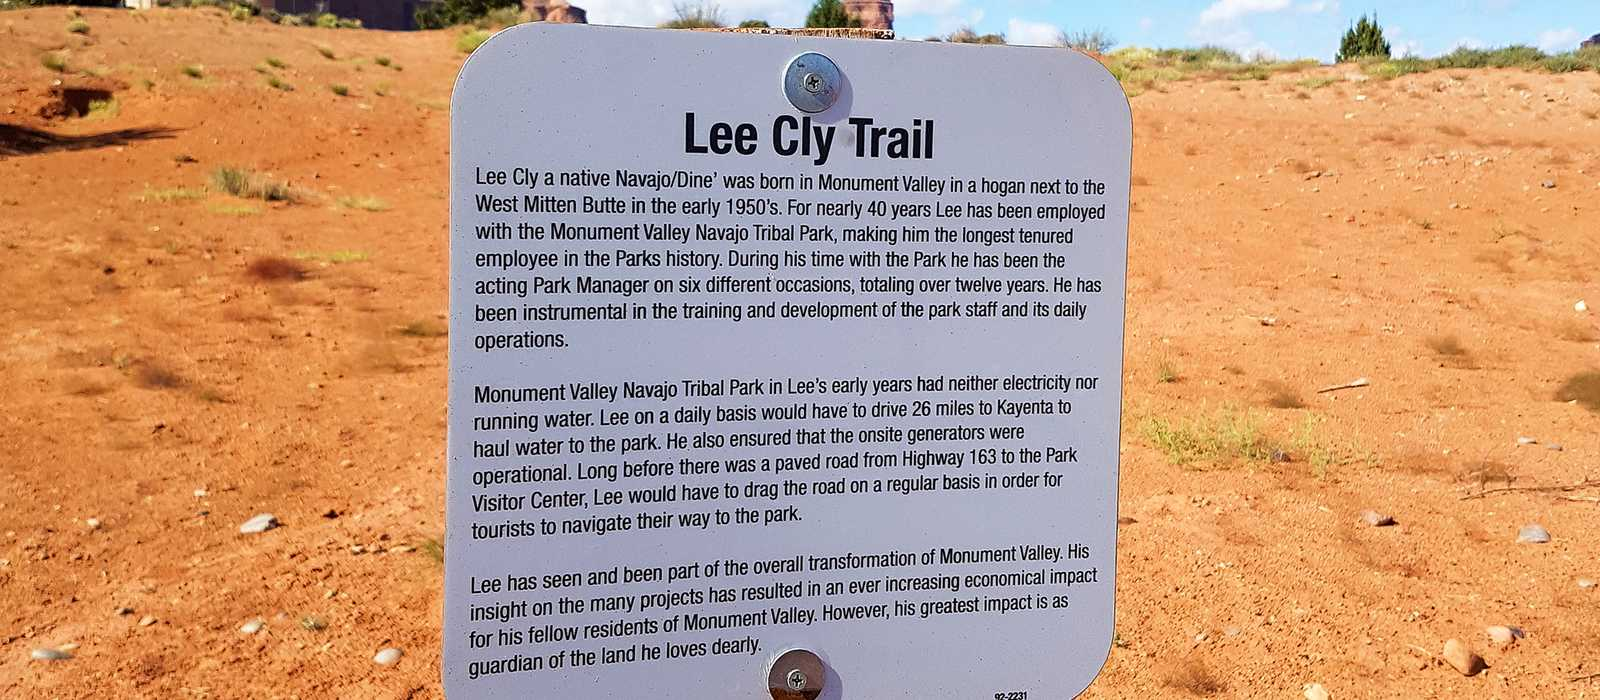 Lee Cly Trail